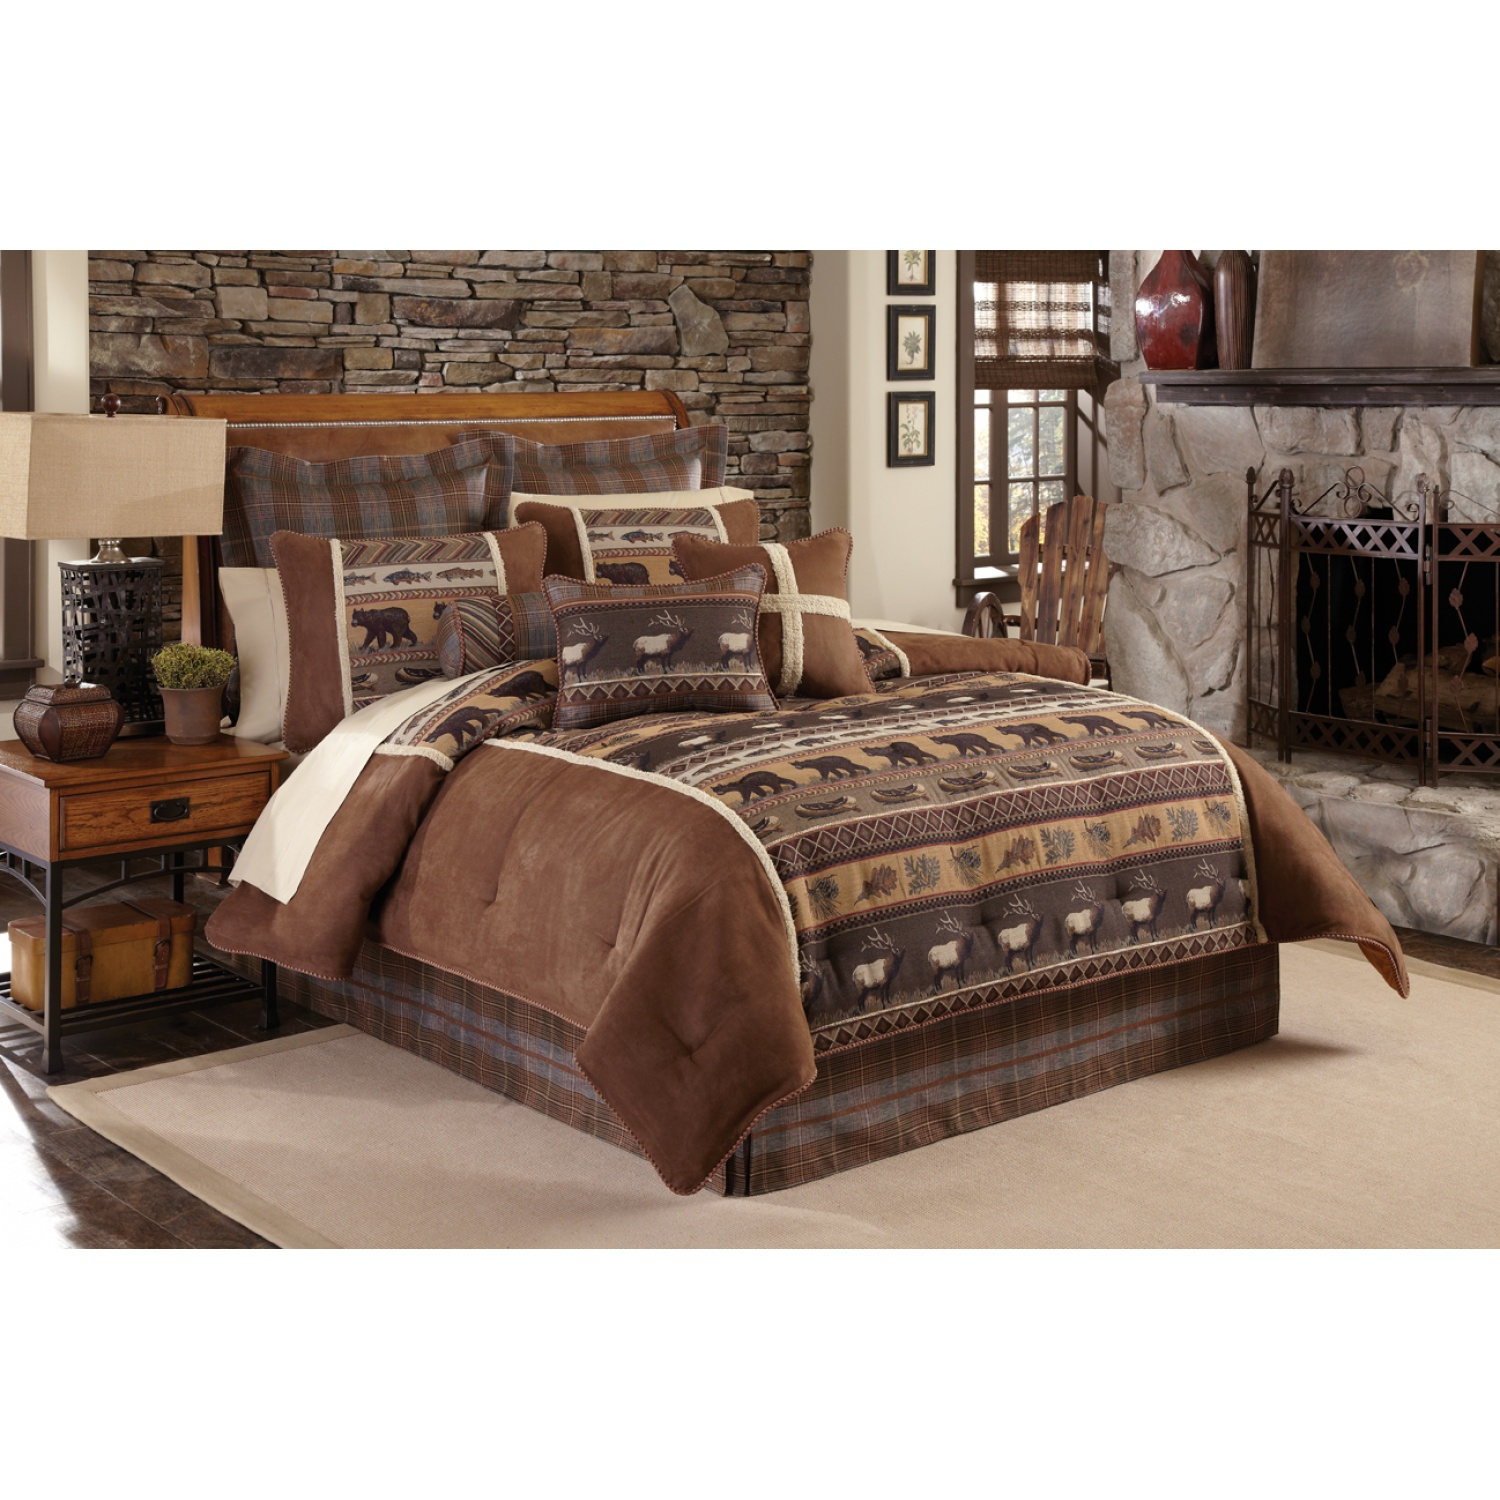 Best california king bedding for bedroom design with california king bed frame